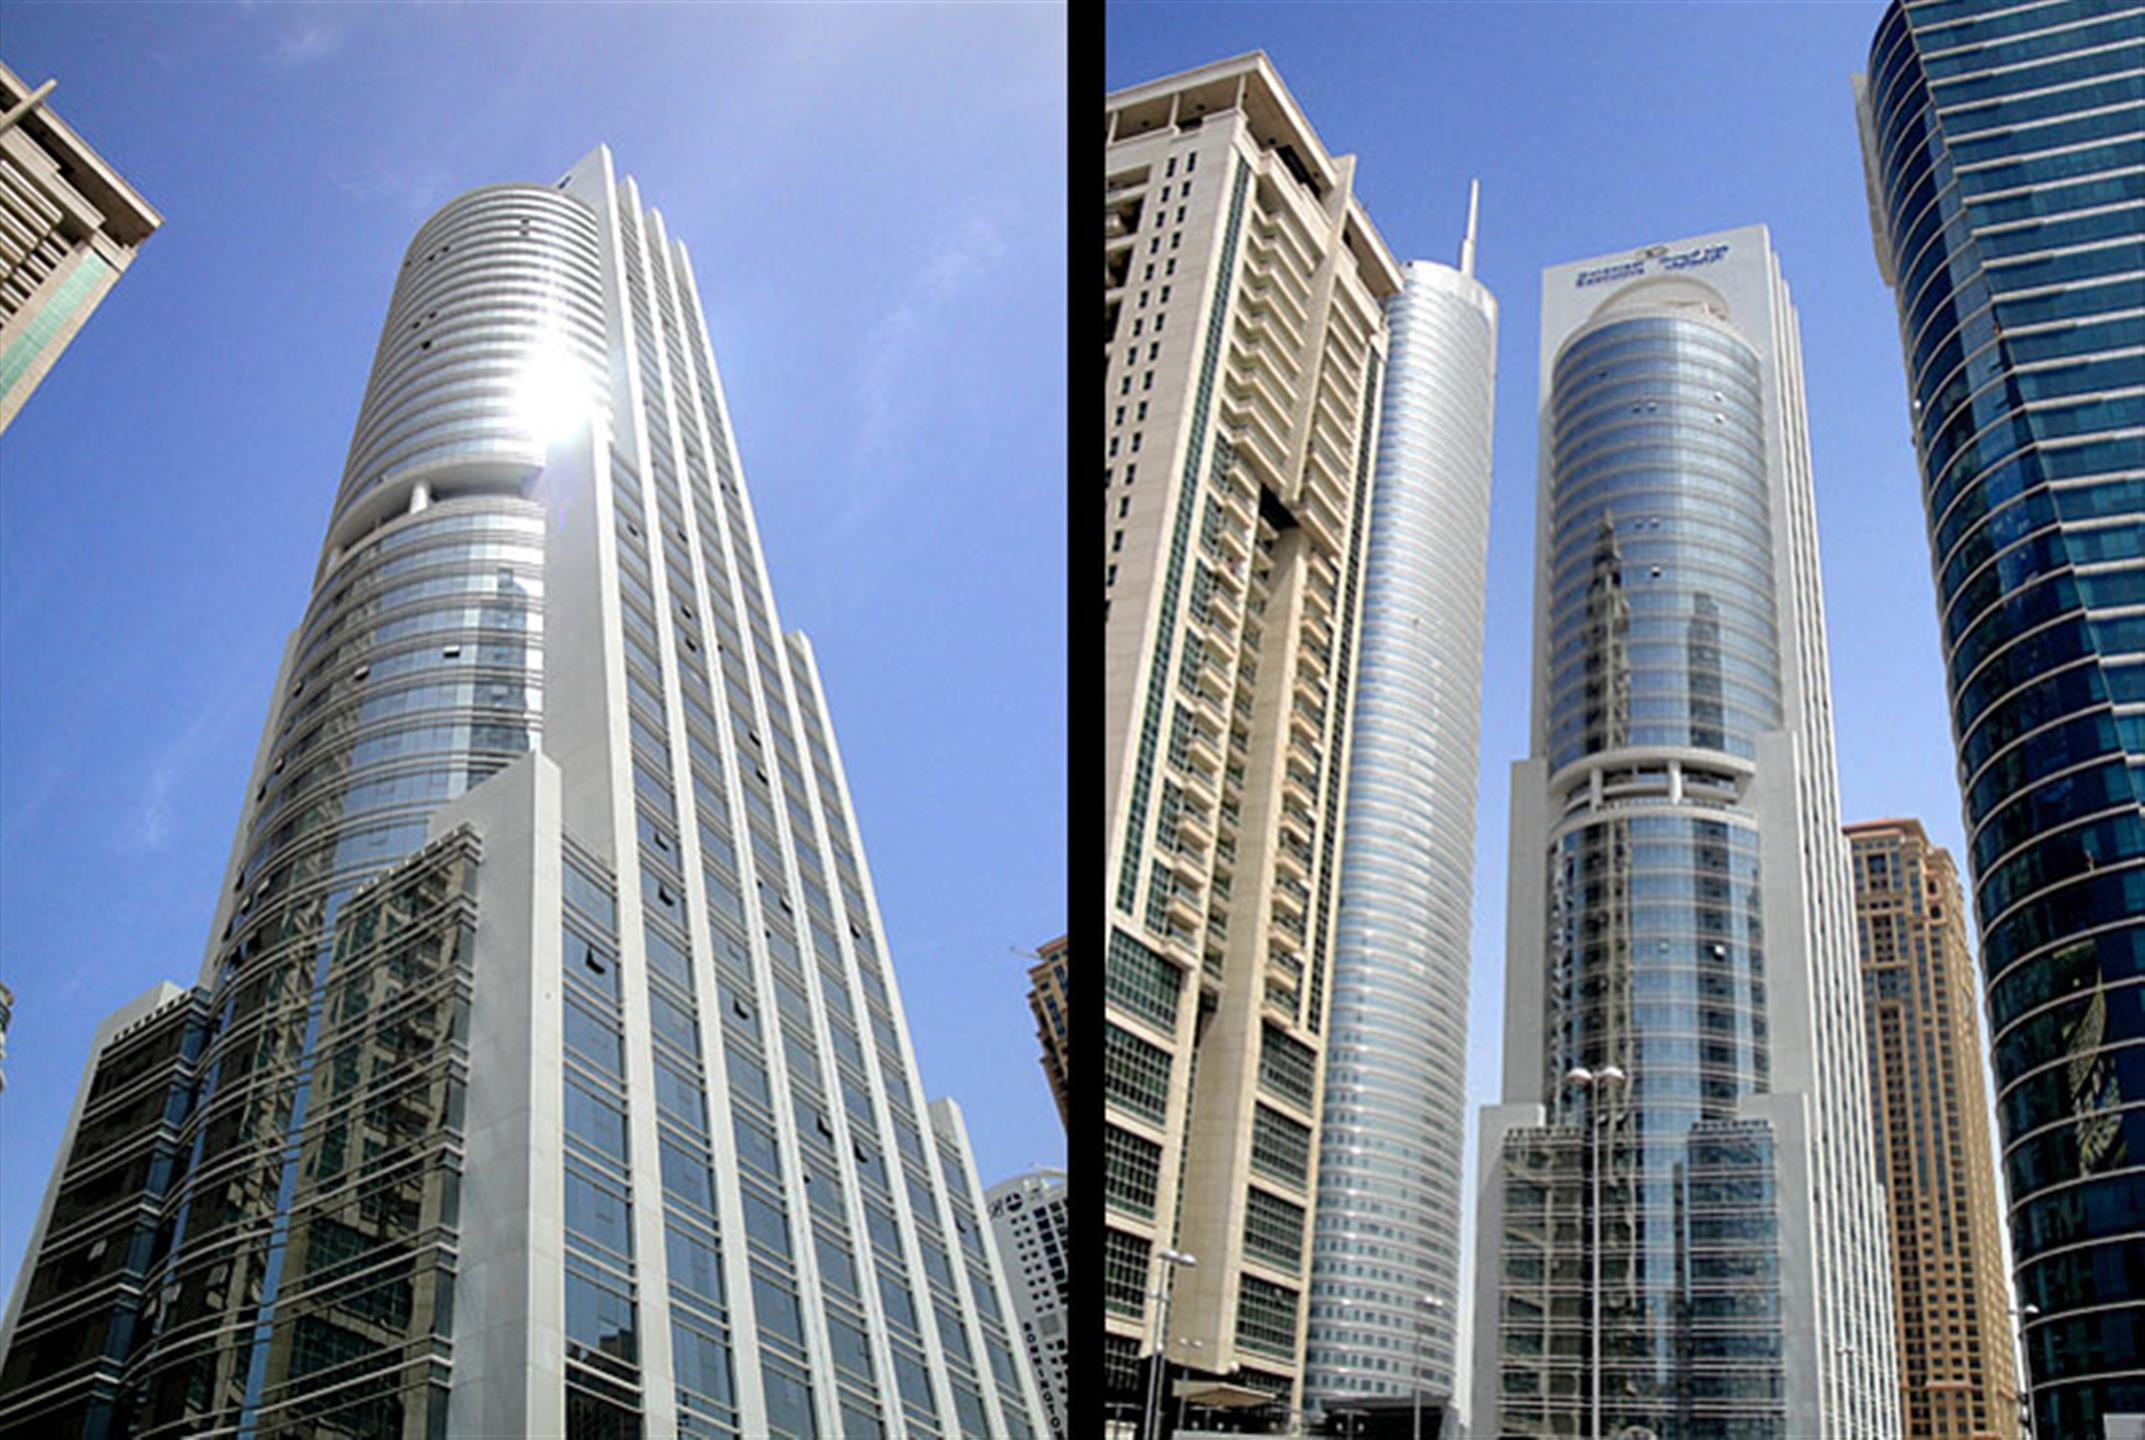 Semi-Retail Office Unit In Gold Crest Executive, Jlt With 7% Return